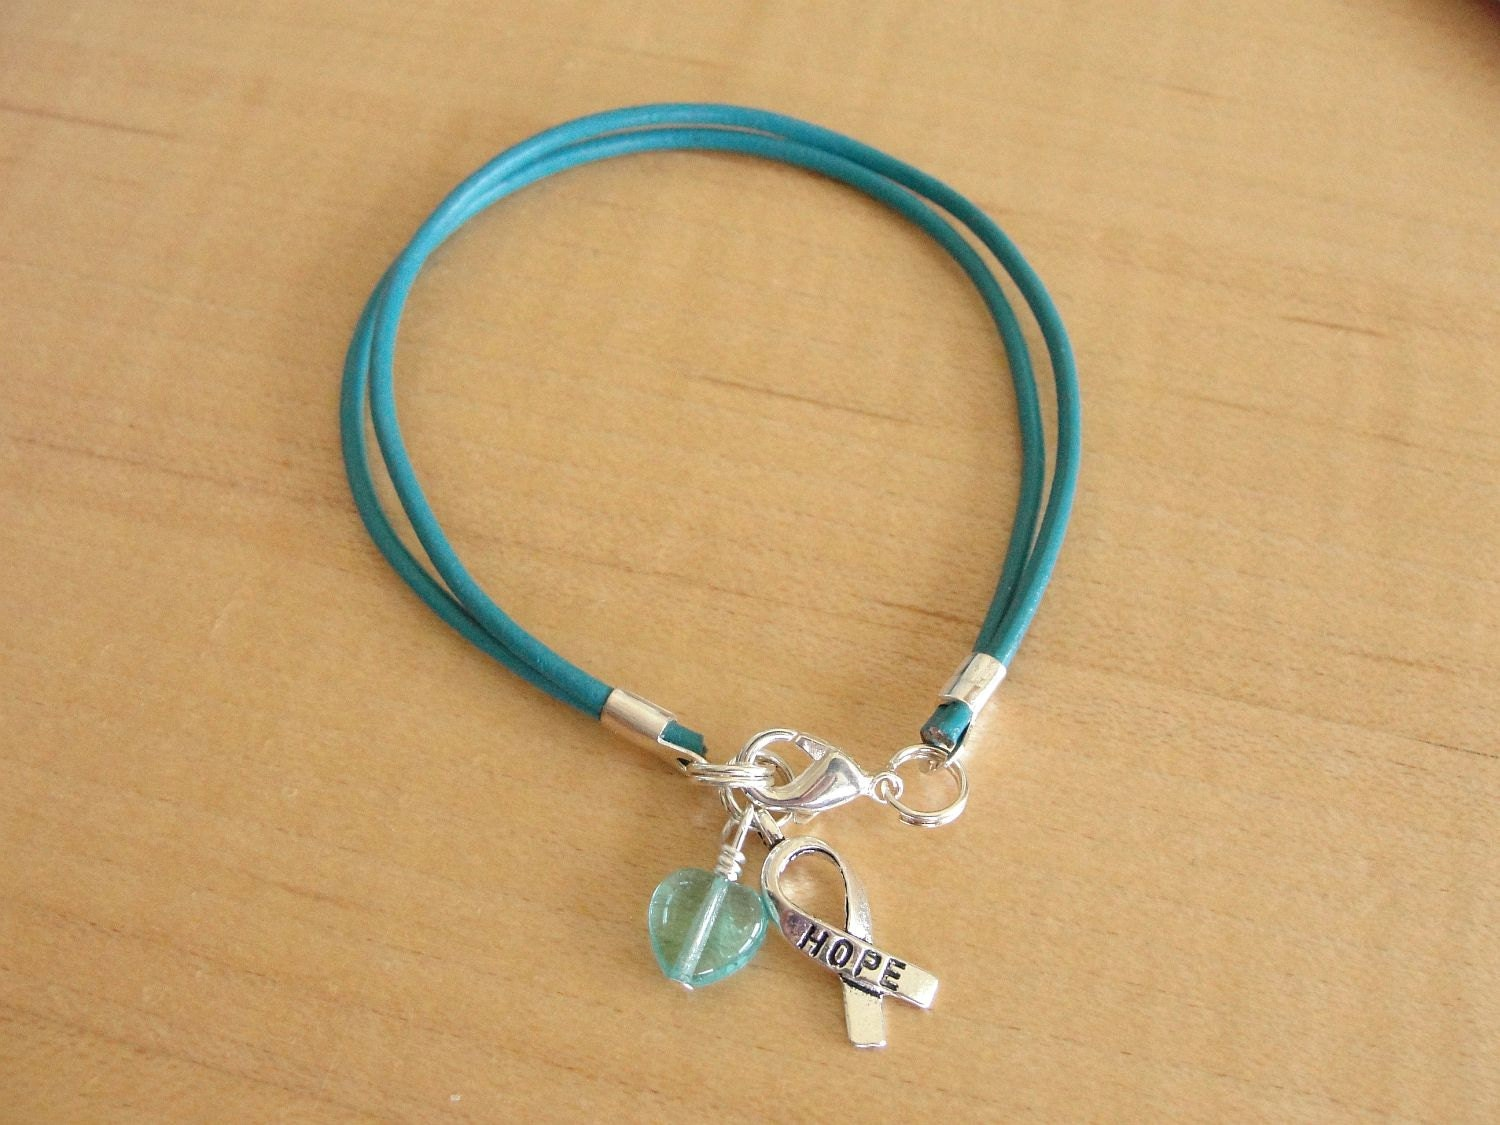 collections teal ribbon will s ovarian synodrome bracelet tourette hope power handmadelovestories ocd ptsd strength scleroderma awareness il cancer fullxfull